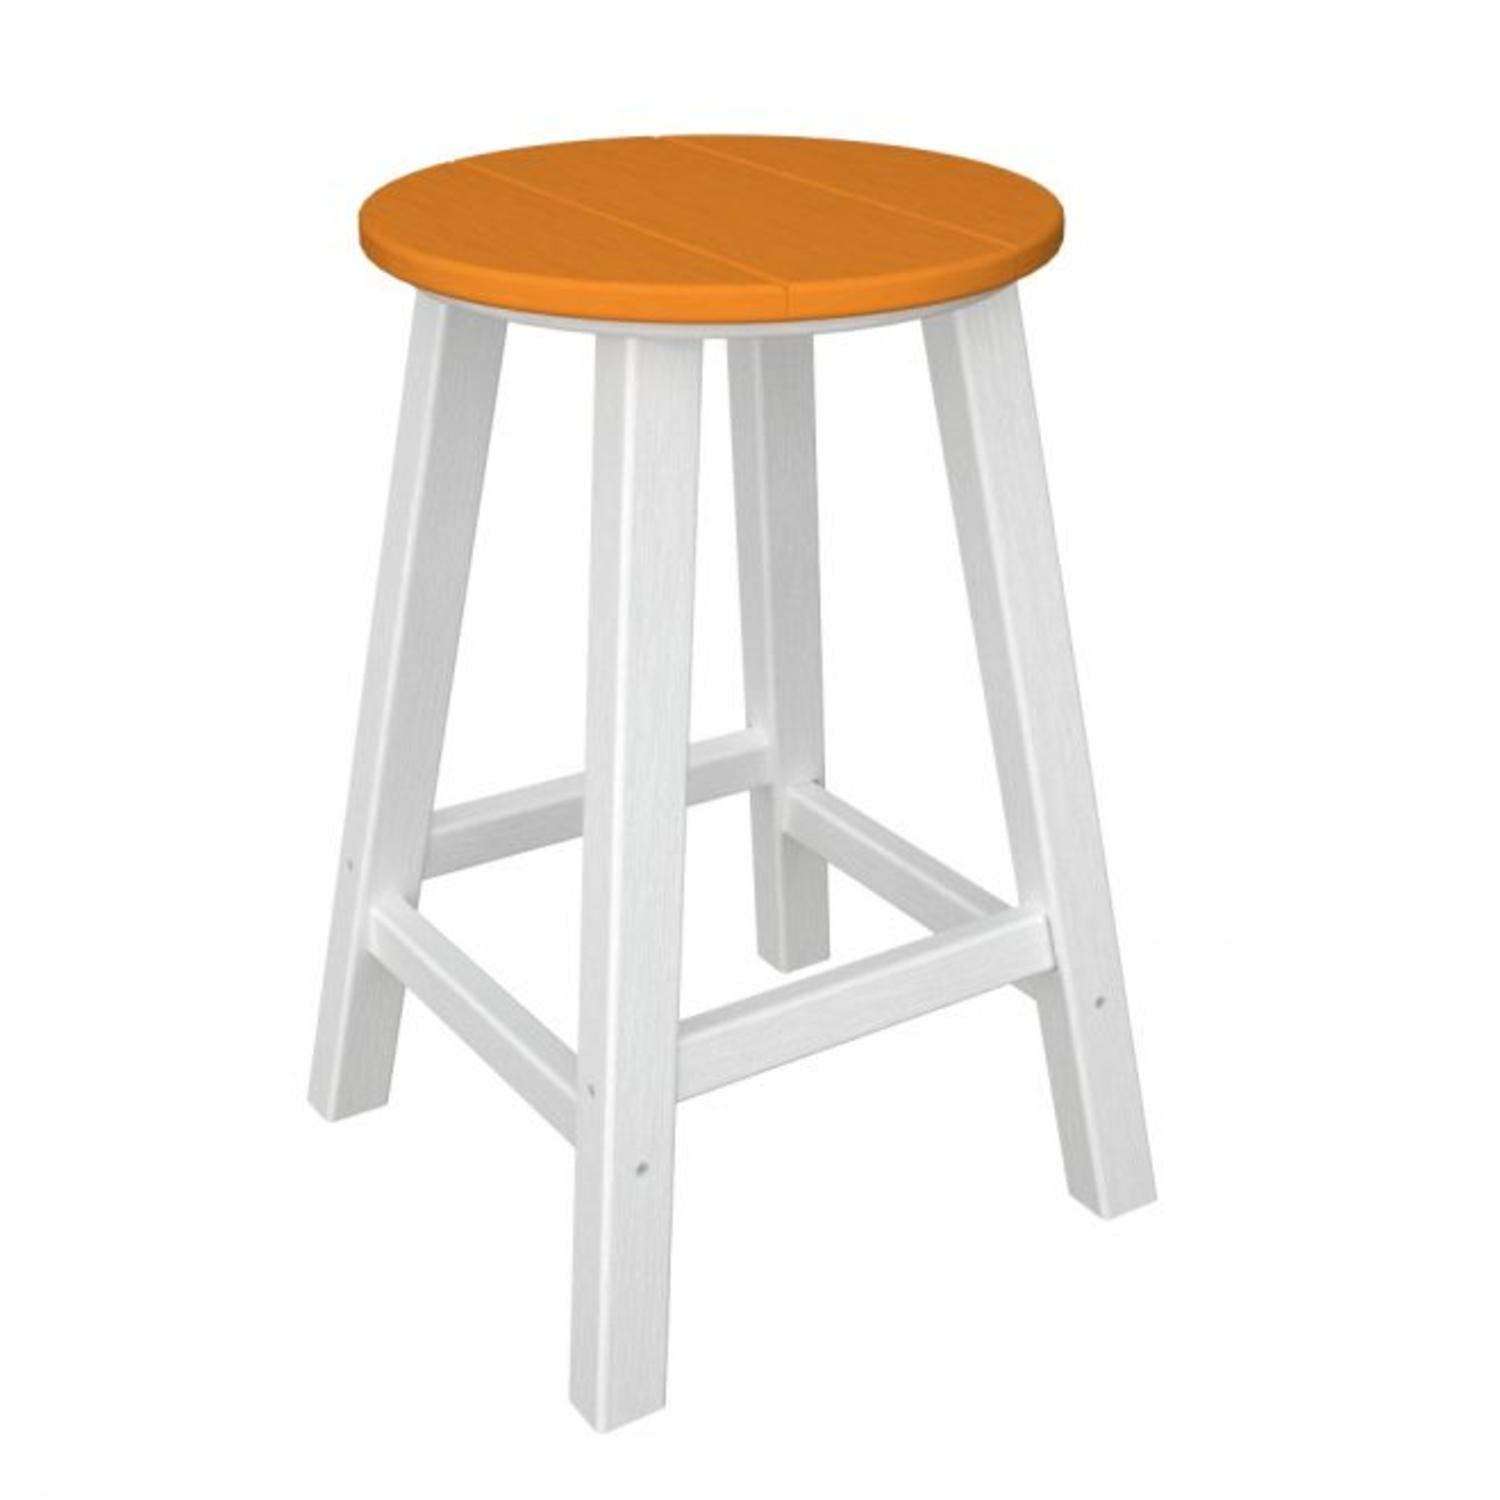 """Pack of 2 Recycled Earth-Friendly Bar Stools - Orange w/ White Frame-24.25"""""""